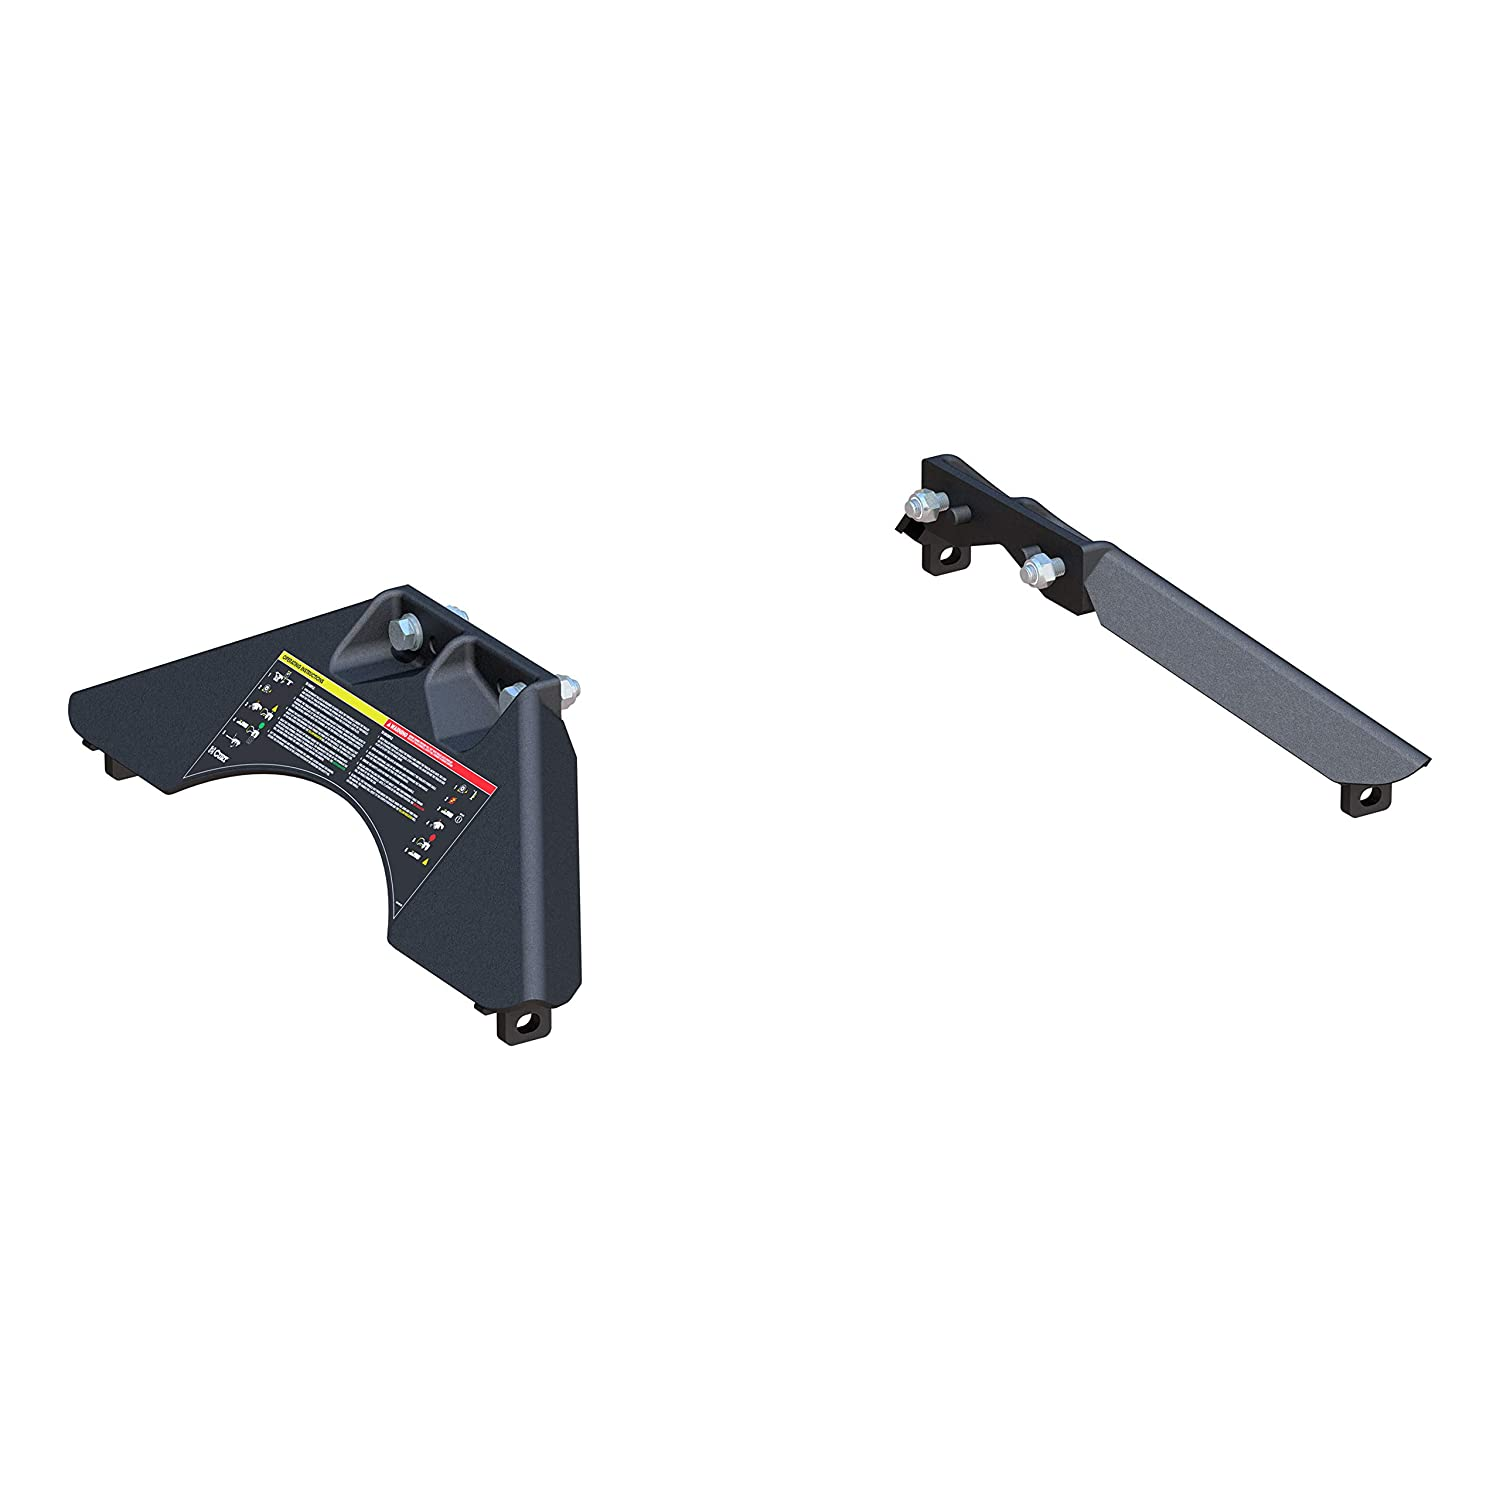 CURT 16907 Replacement Legs for CURT A25 Fifth Wheel Hitch Head #16580